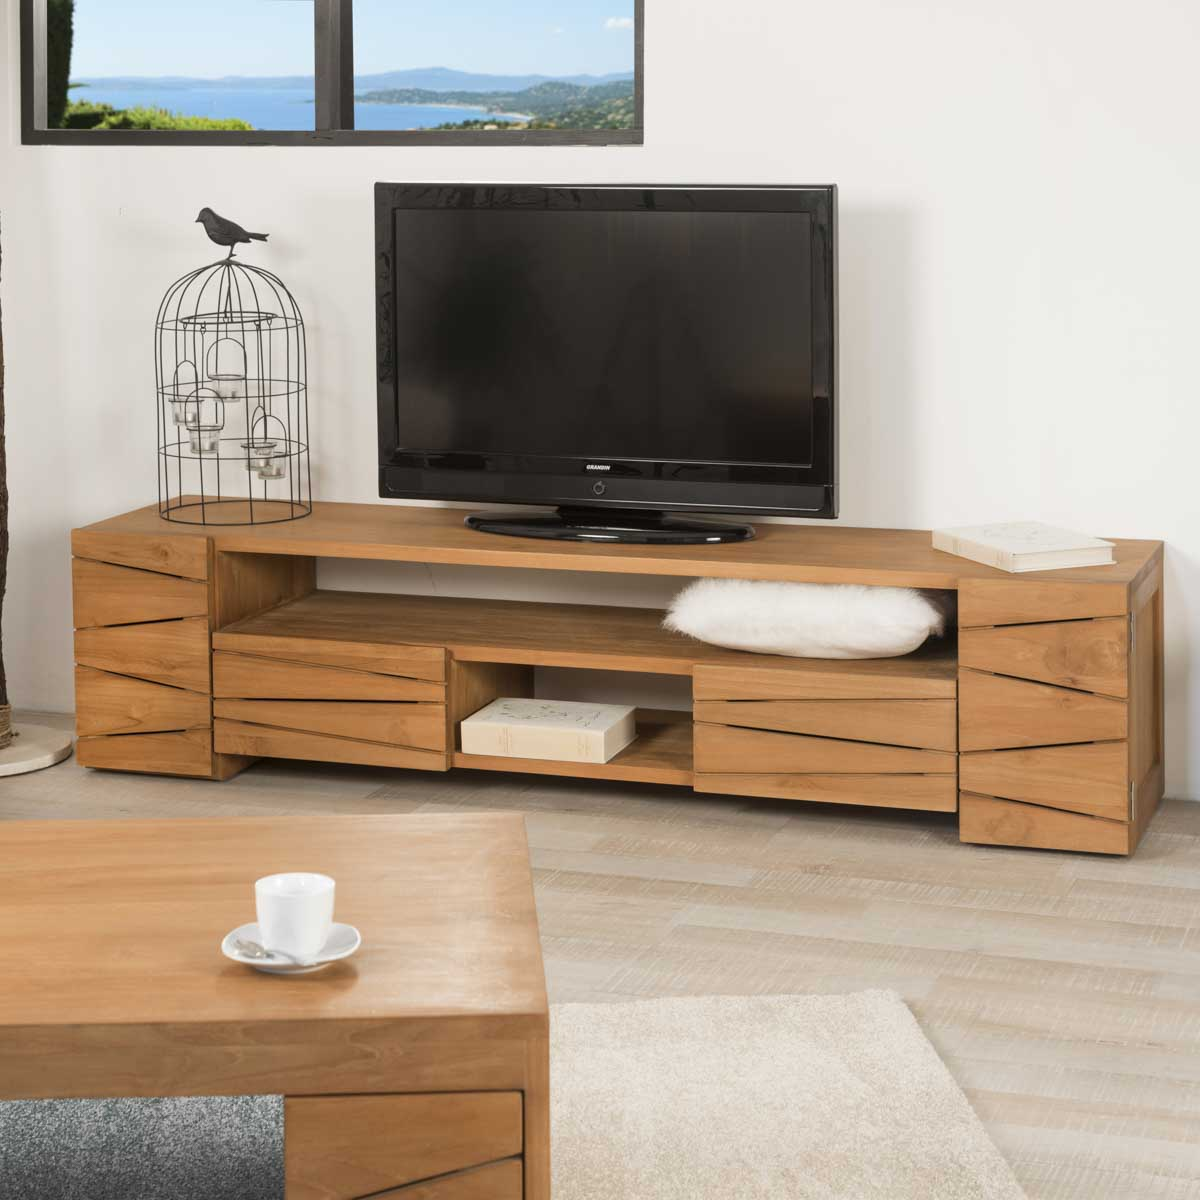 Meuble tv teck meuble tv bois naturel rectangle for Table de television en bois